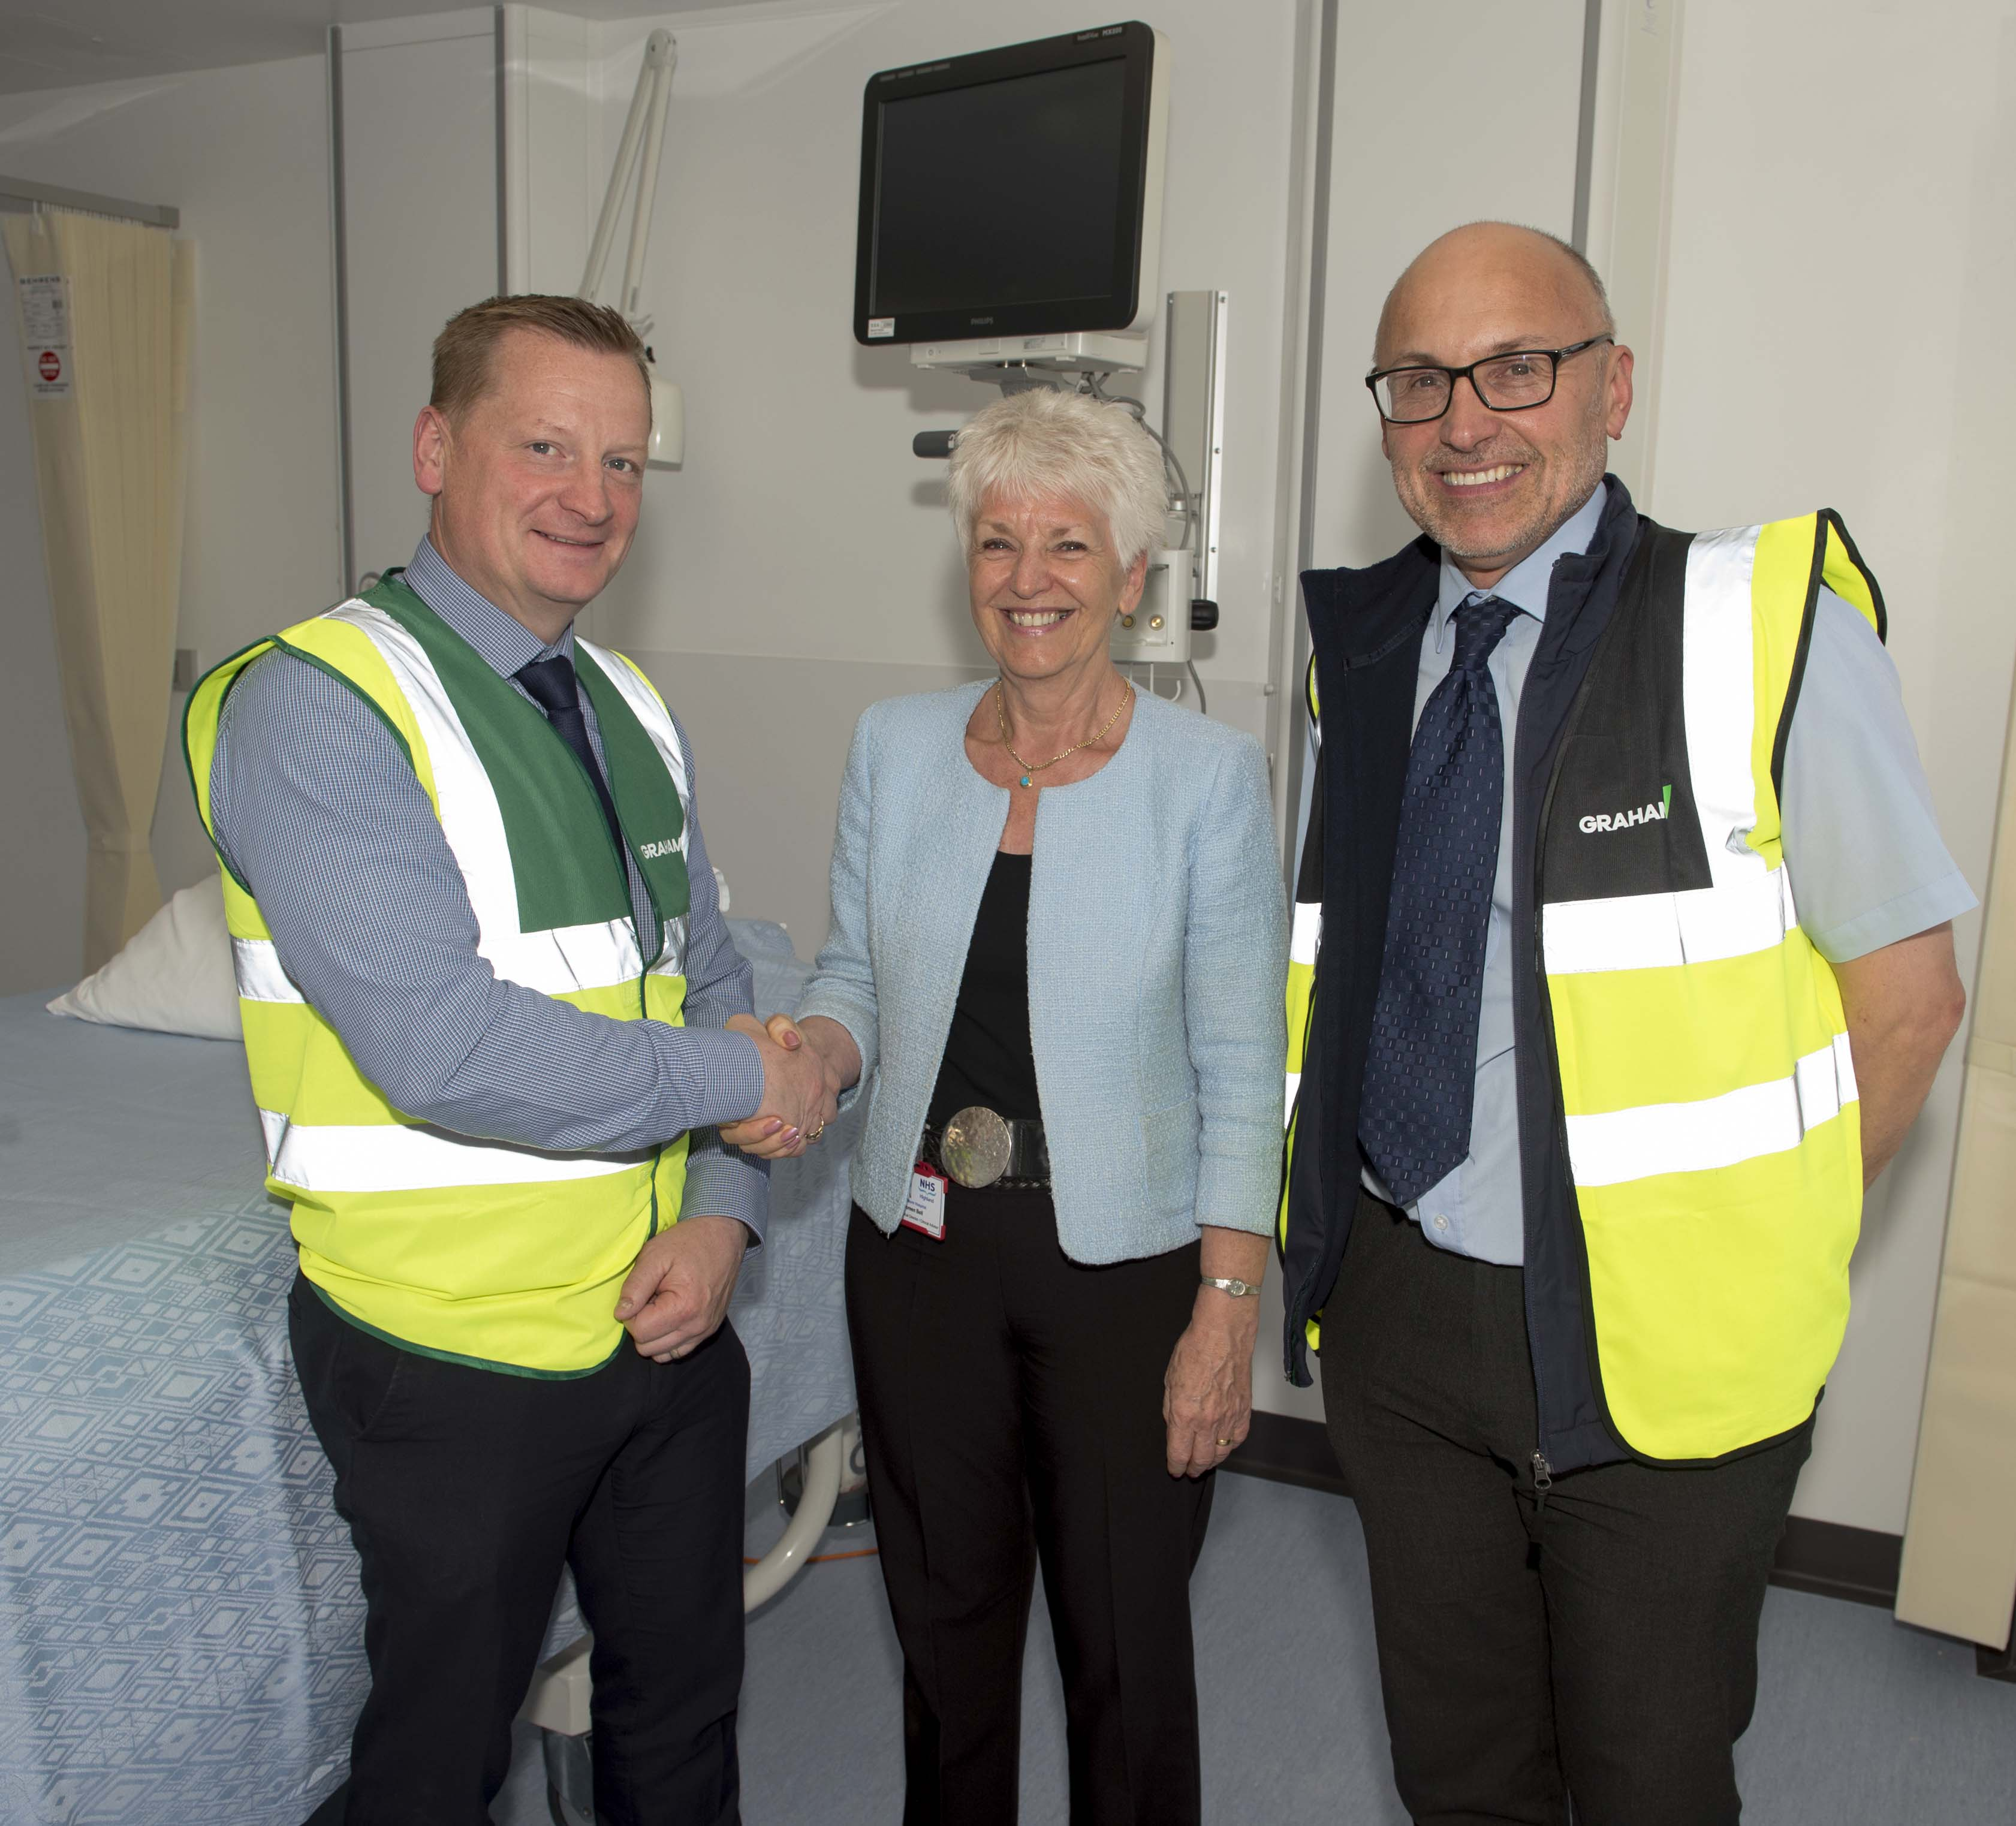 GRAHAM Construction hands over phase one of Raigmore